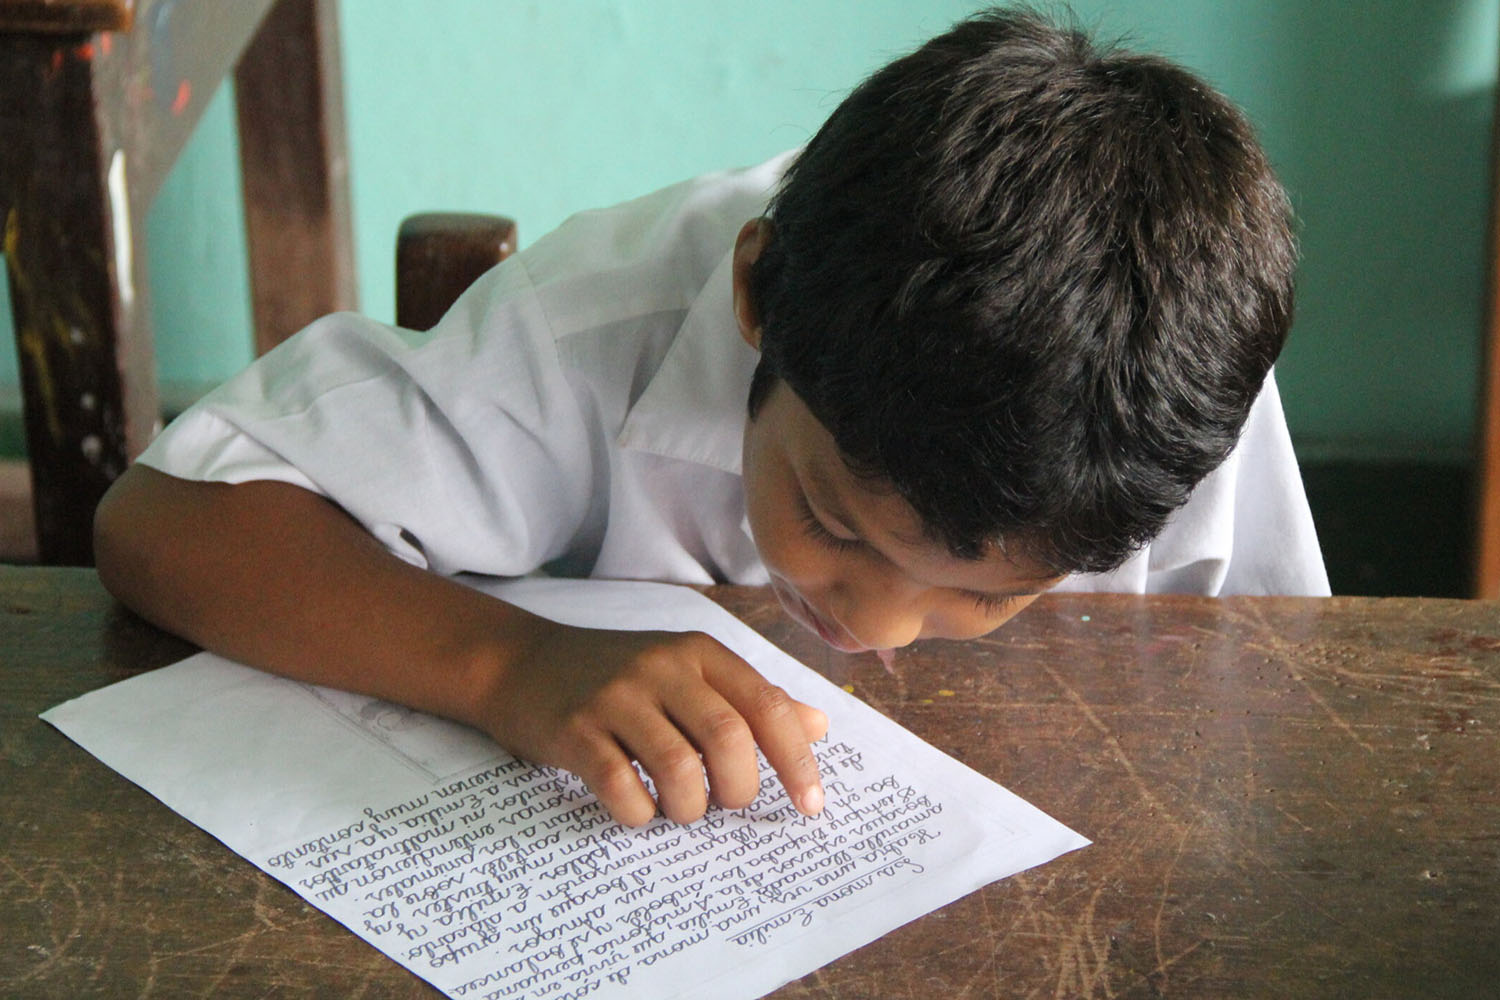 Peruvian student at desk reading